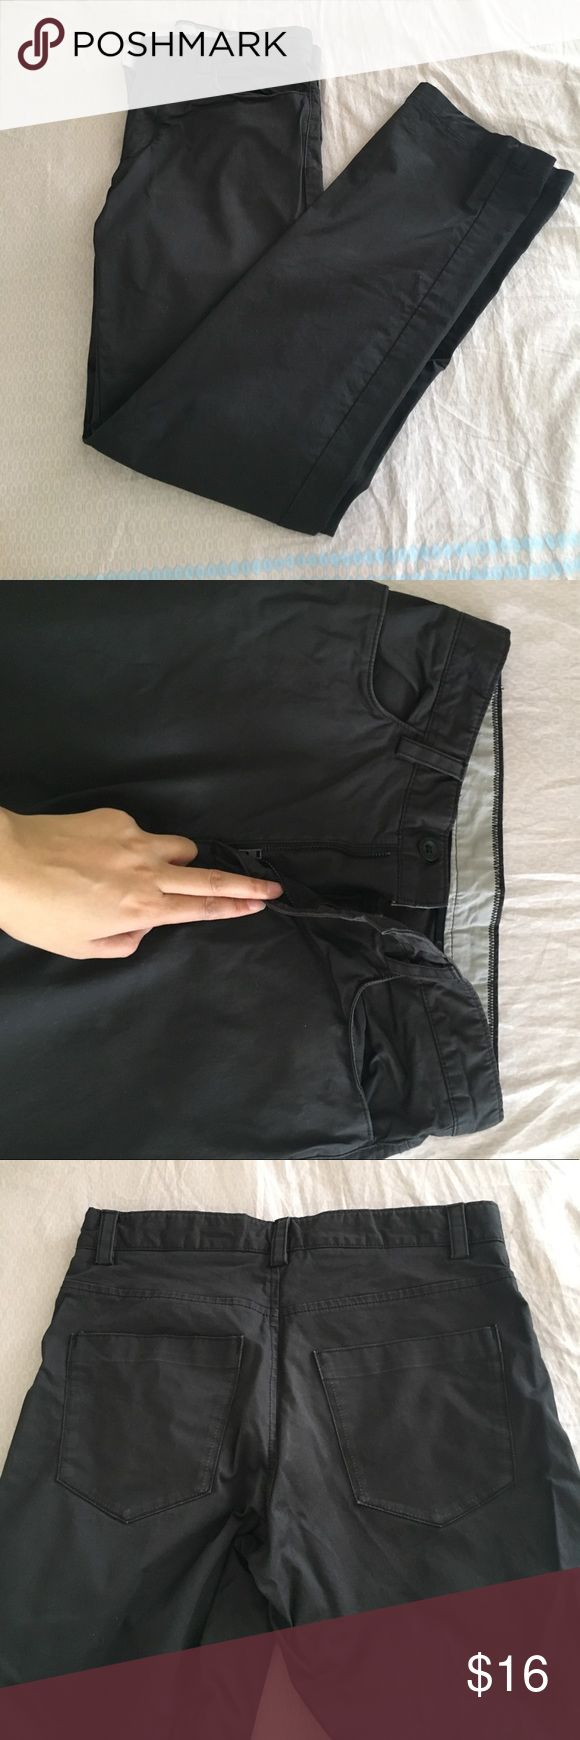 Calvin Klein men's pants In great used condition. 29*32. Calvin Klein Pants